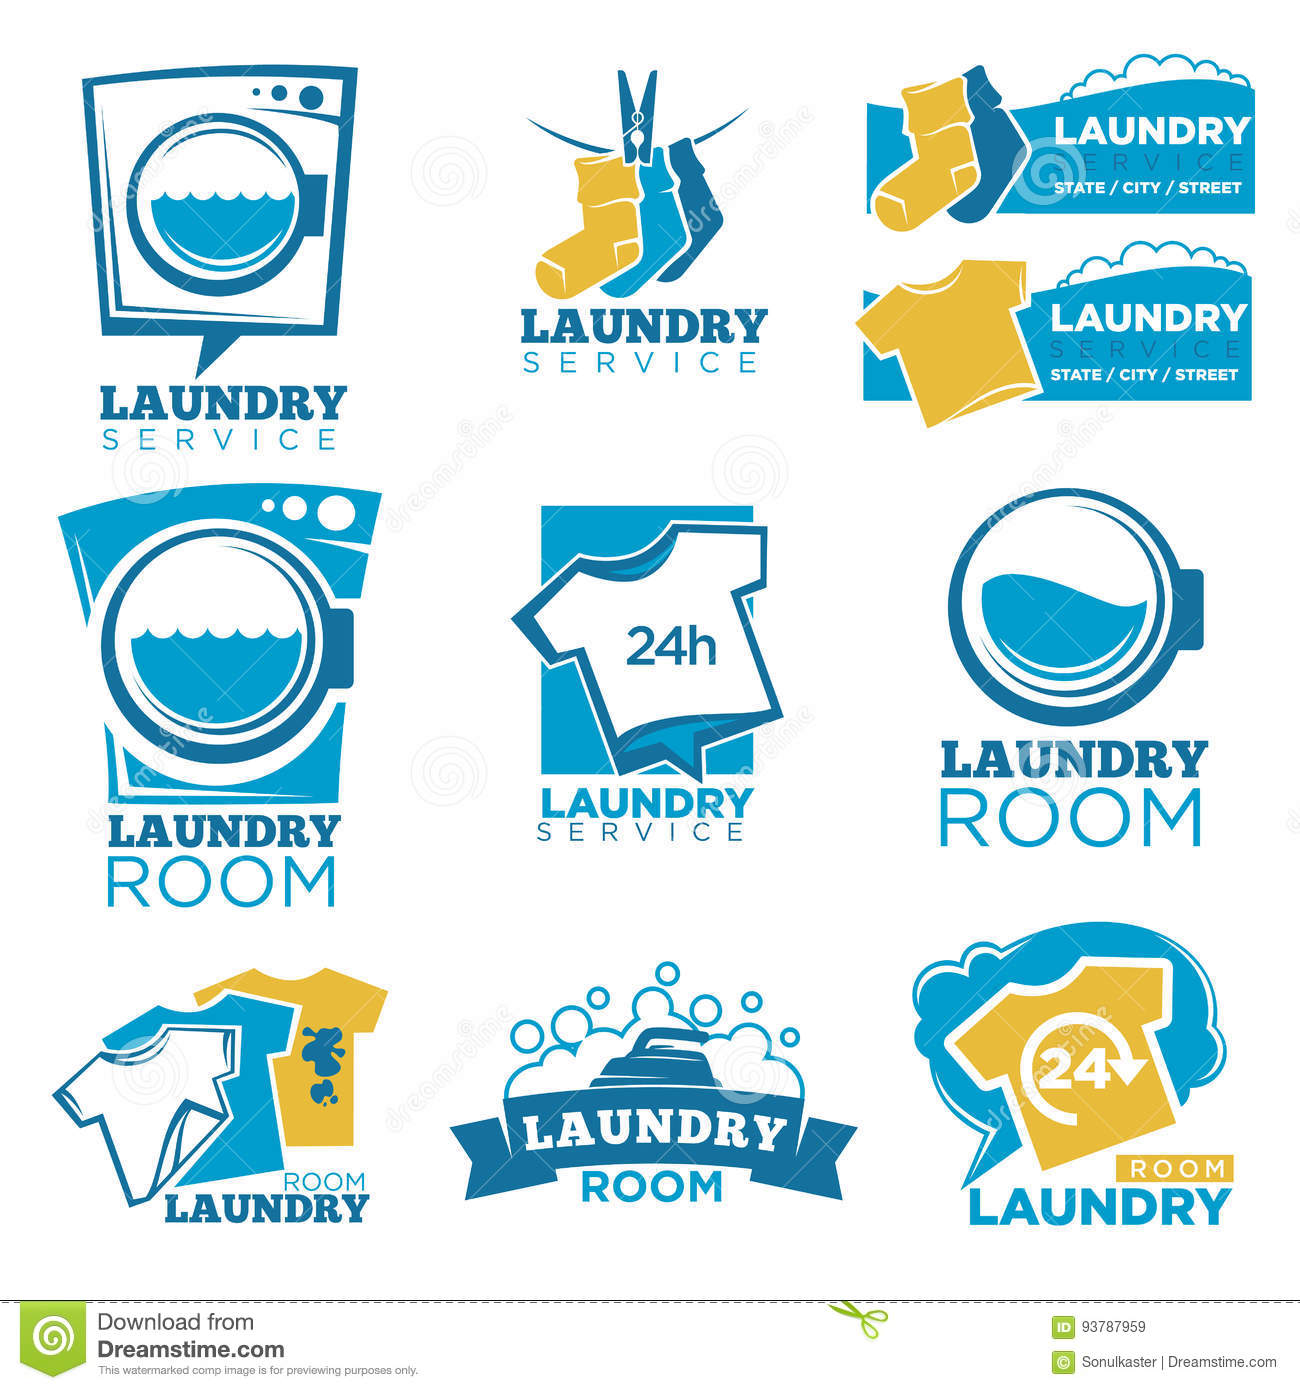 Laundry service vector template icons set of linen washing machine laundry service vector template icons set of linen washing machine and detergent biocorpaavc Gallery